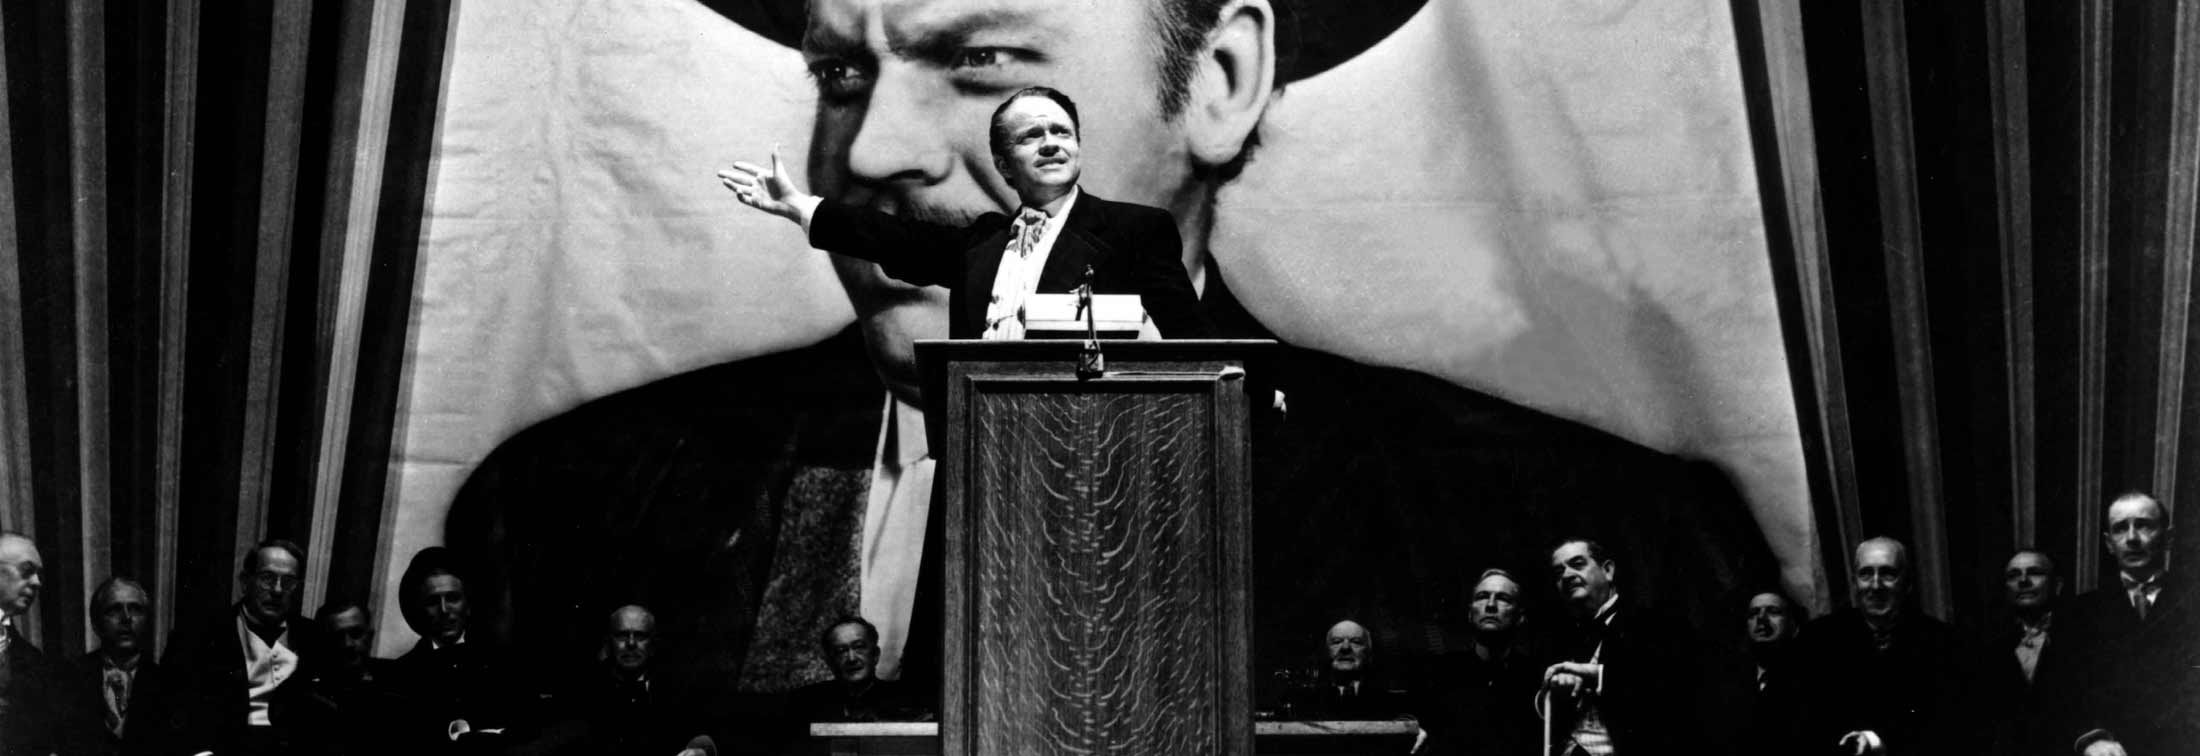 Citizen Kane - Celebrating the 80th anniversary of the great American masterpiece